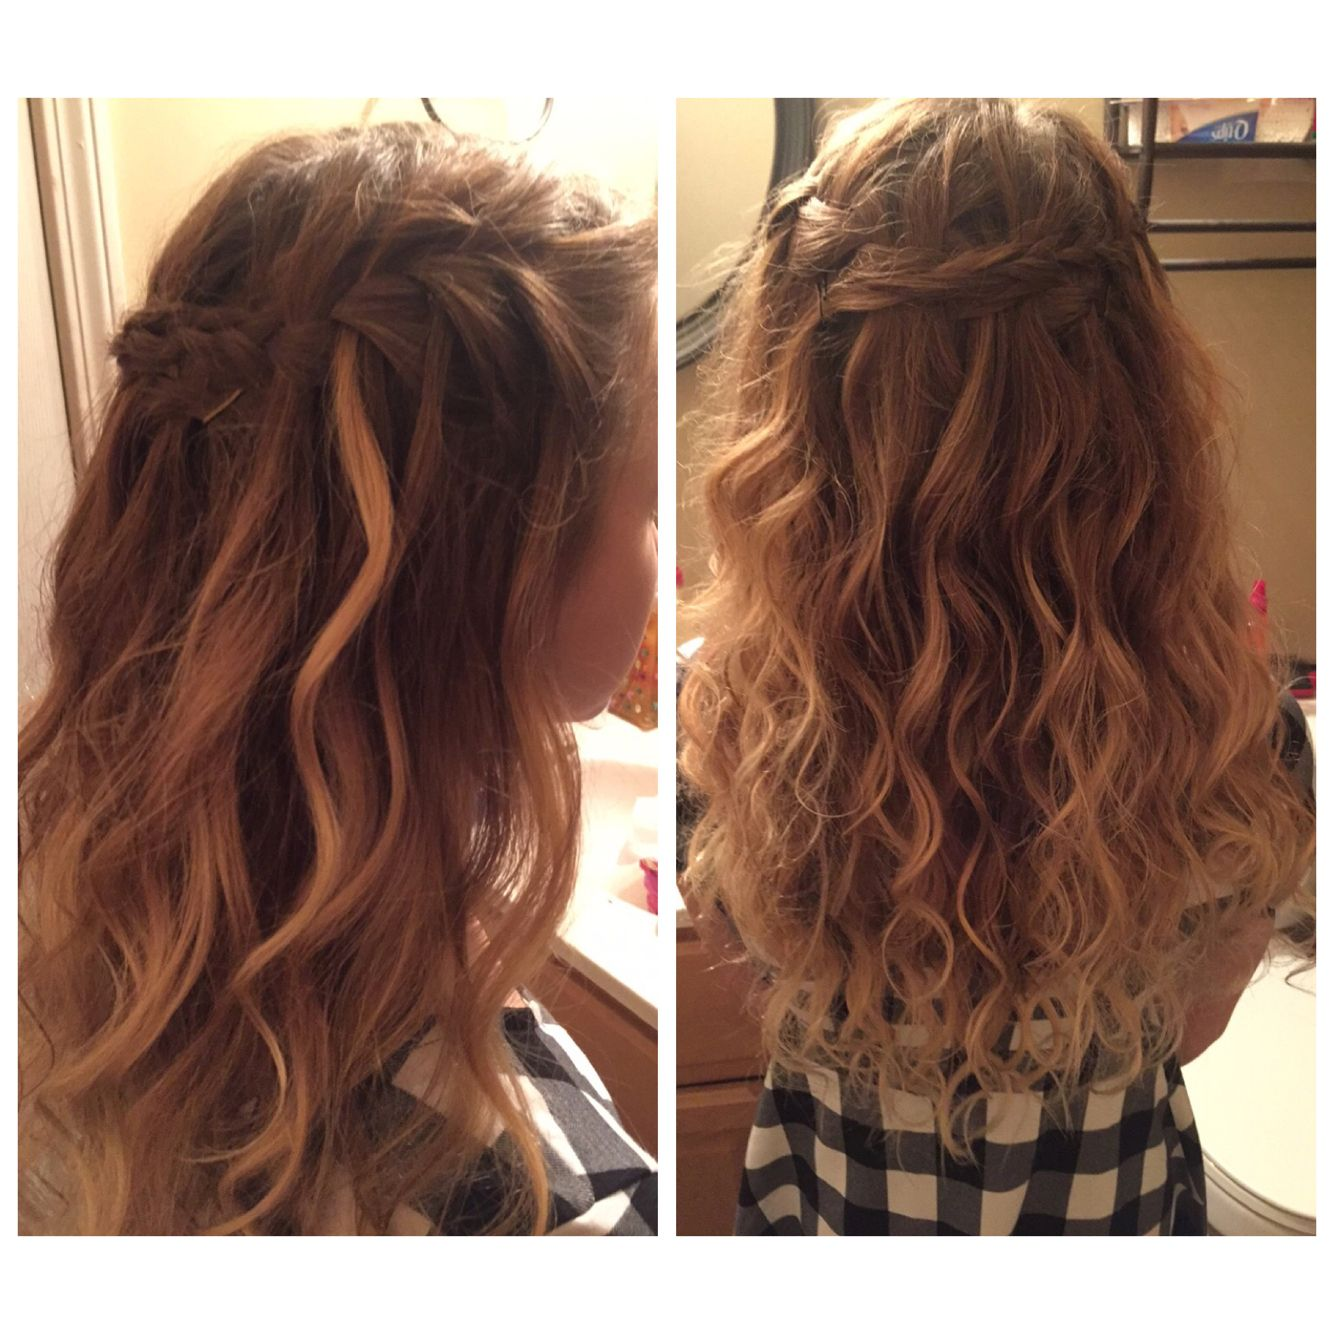 Waterfall braid messy curls hair pinterest messy curls hair